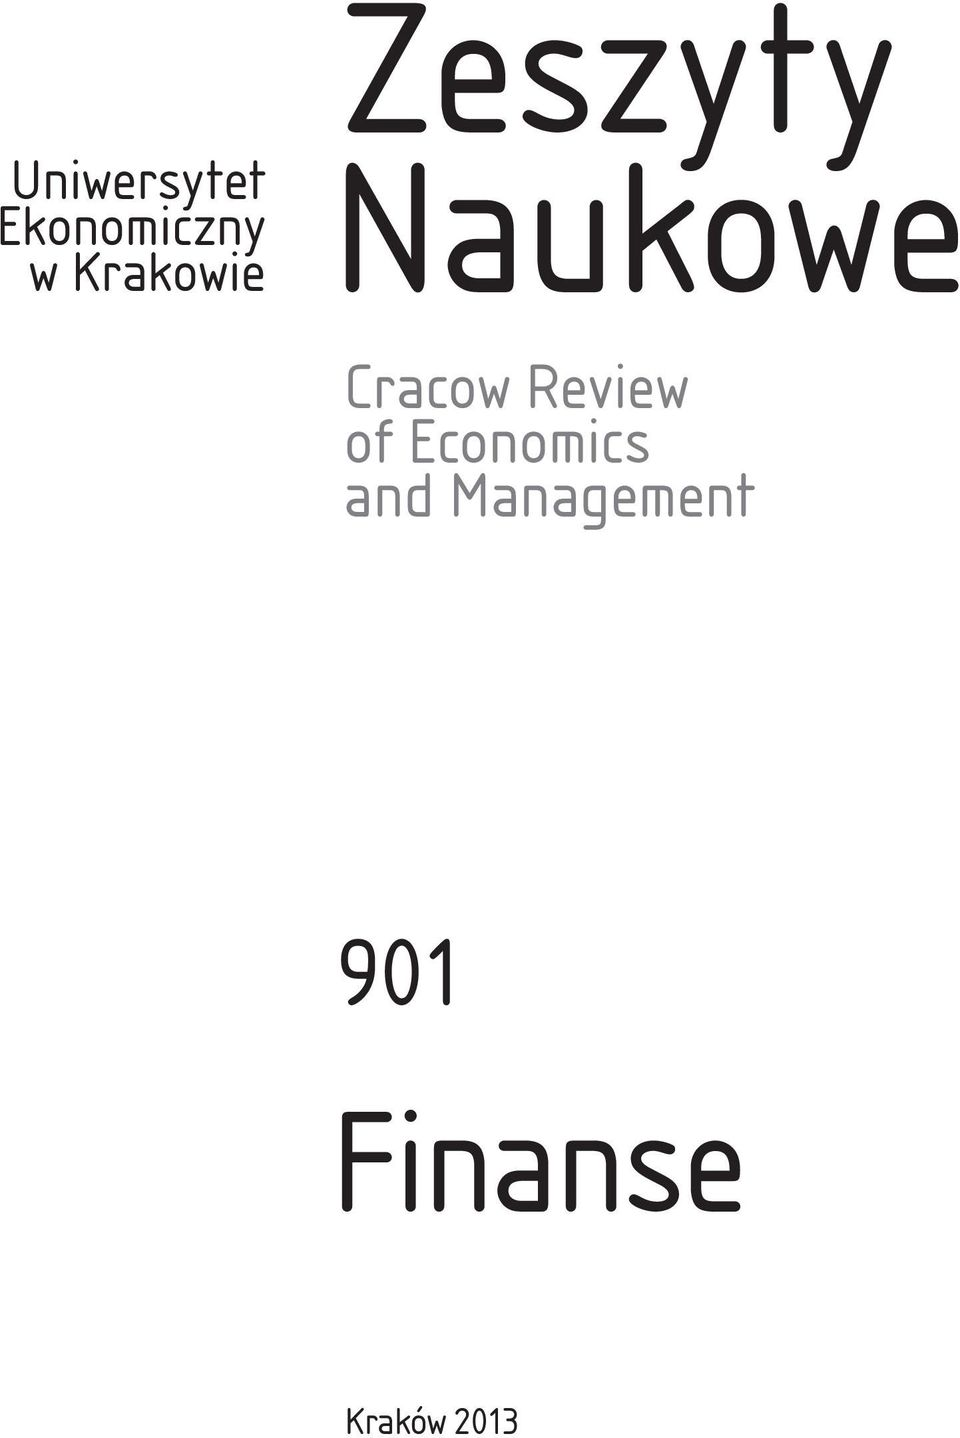 Cracow Review of Economics